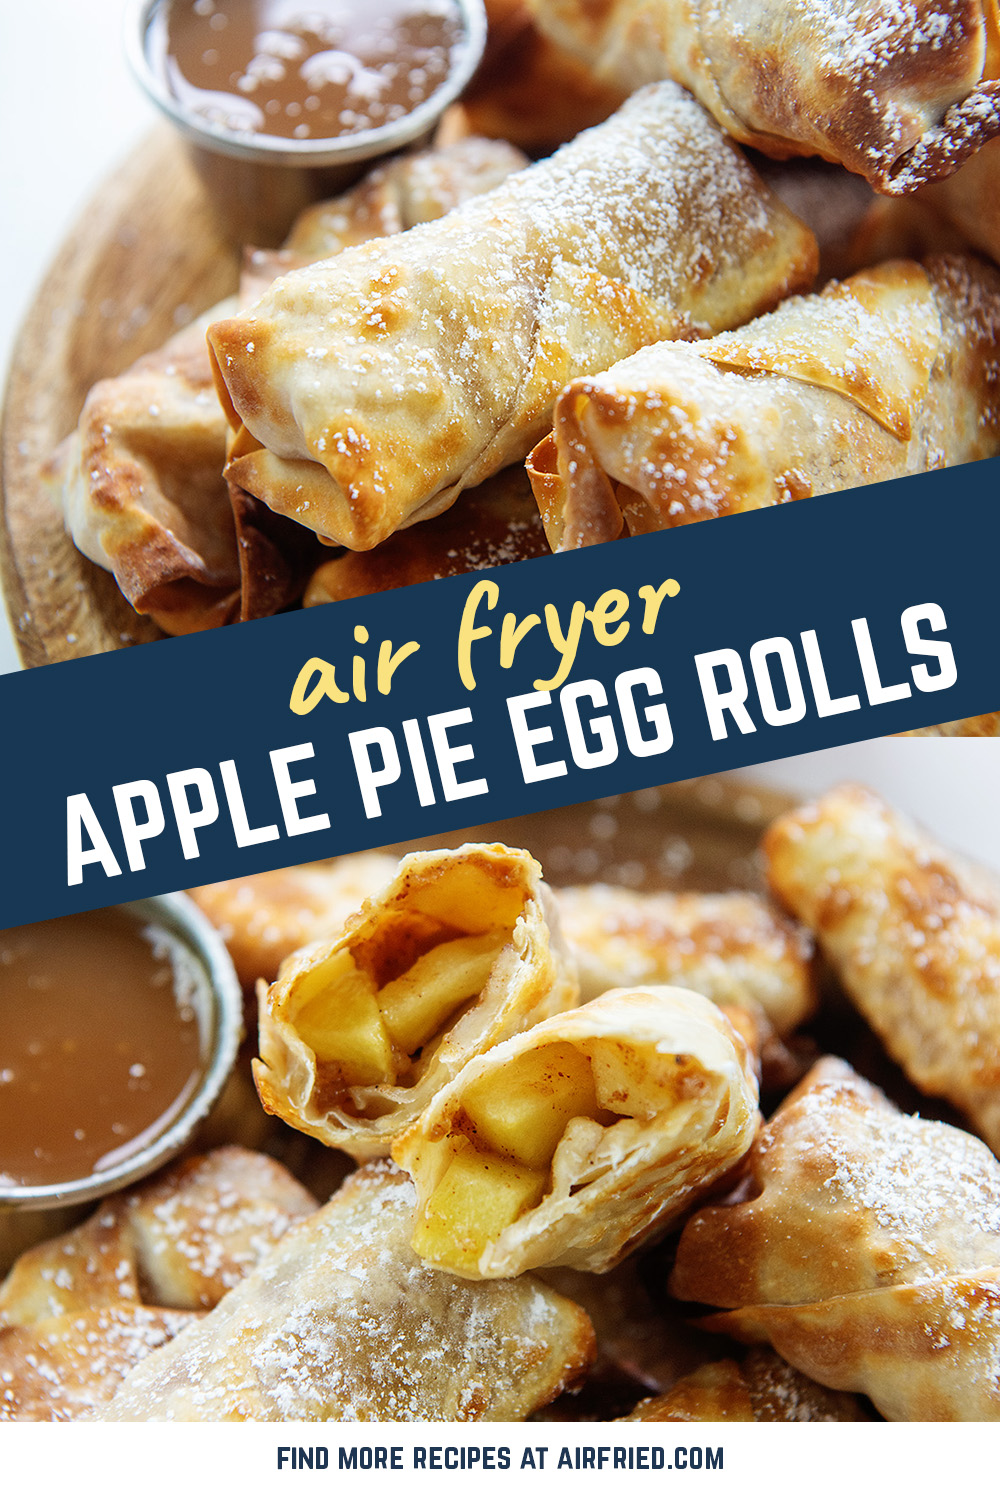 Our apple pie egg roll recipe uses the air fryer.  That makes these easy to make, crispy, and the filling is cooked perfectly.  This is so easy you can do it on a Wednesday!